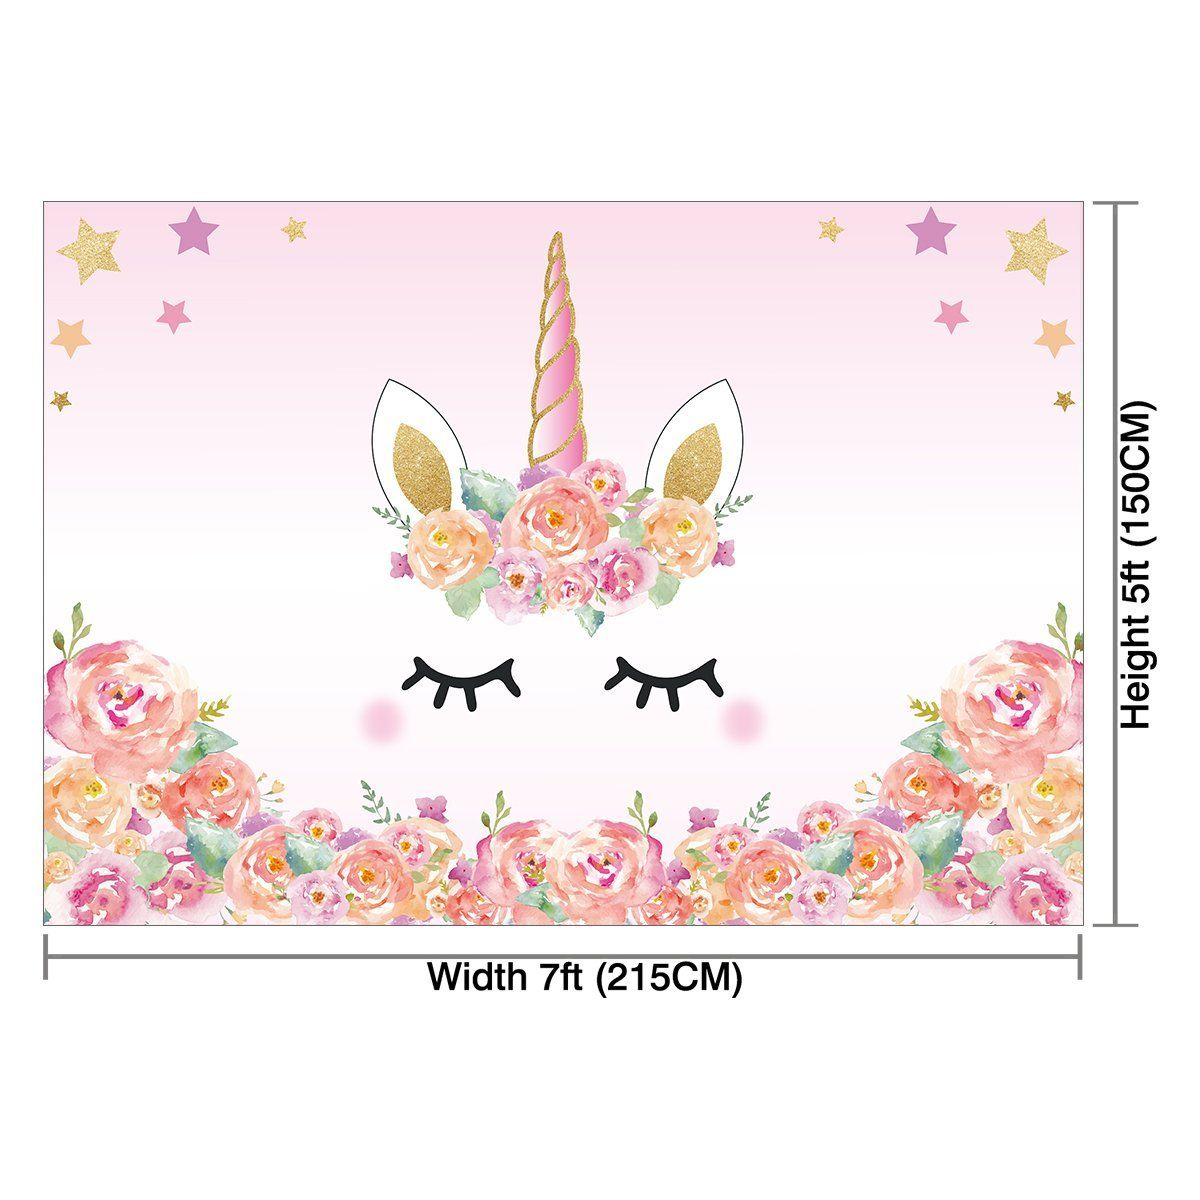 Hellodecor Polyster 7x5ft Unicorn Themed Birthday Party Banner Photo Backdrop Background W Unicorn Birthday Backdrops For Parties Unicorn Themed Birthday Party